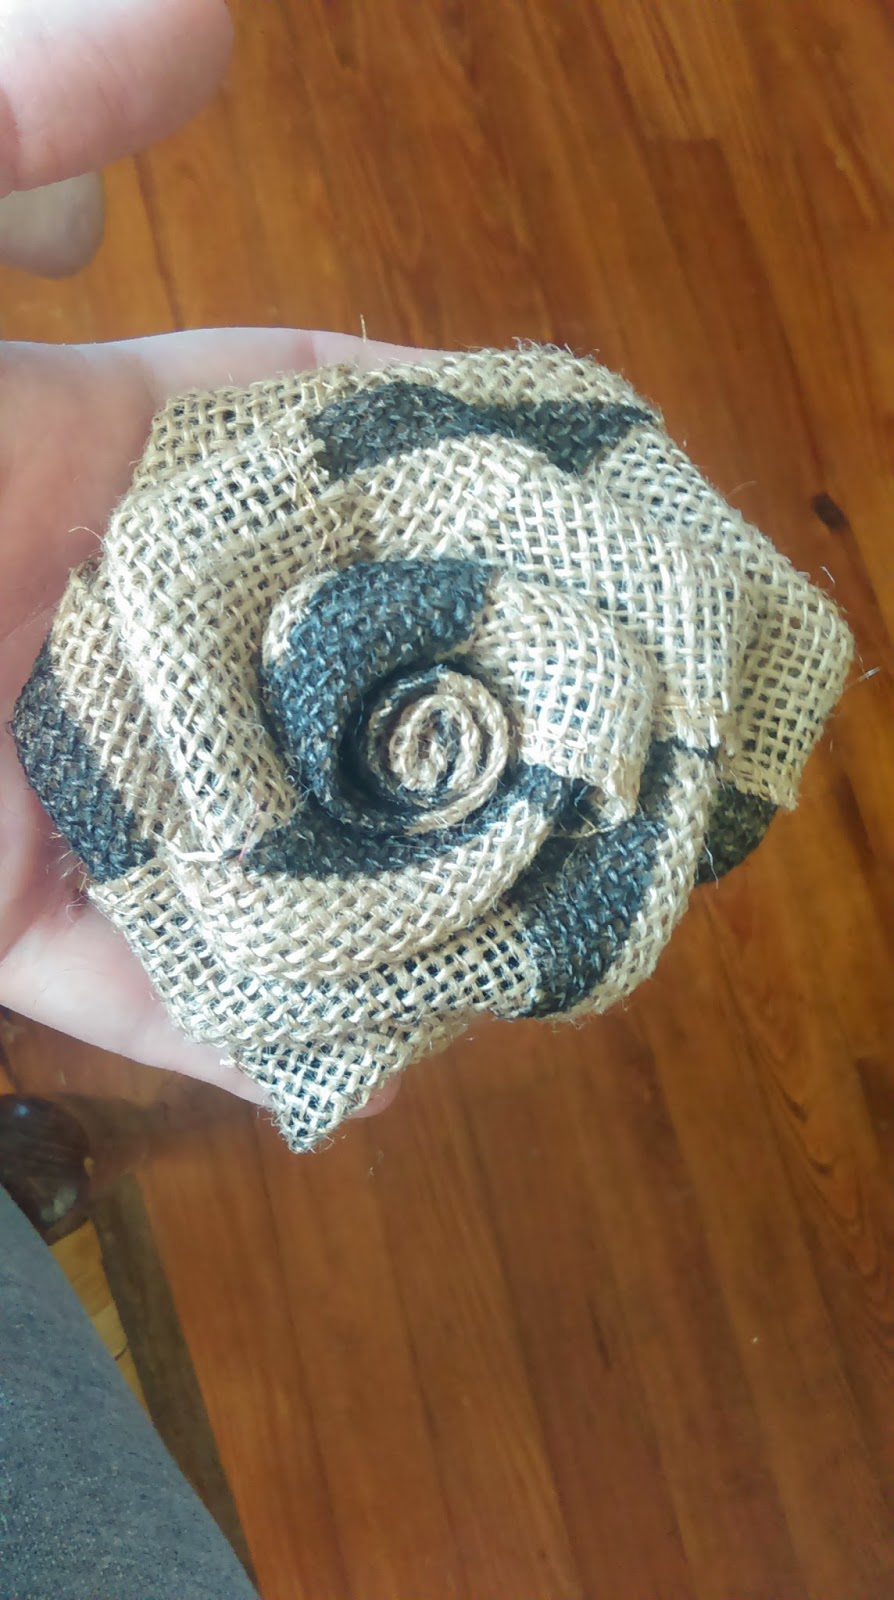 Dress up your home with these beautiful burlap roses! They are SUPER easy and inexpensive to make on your own!